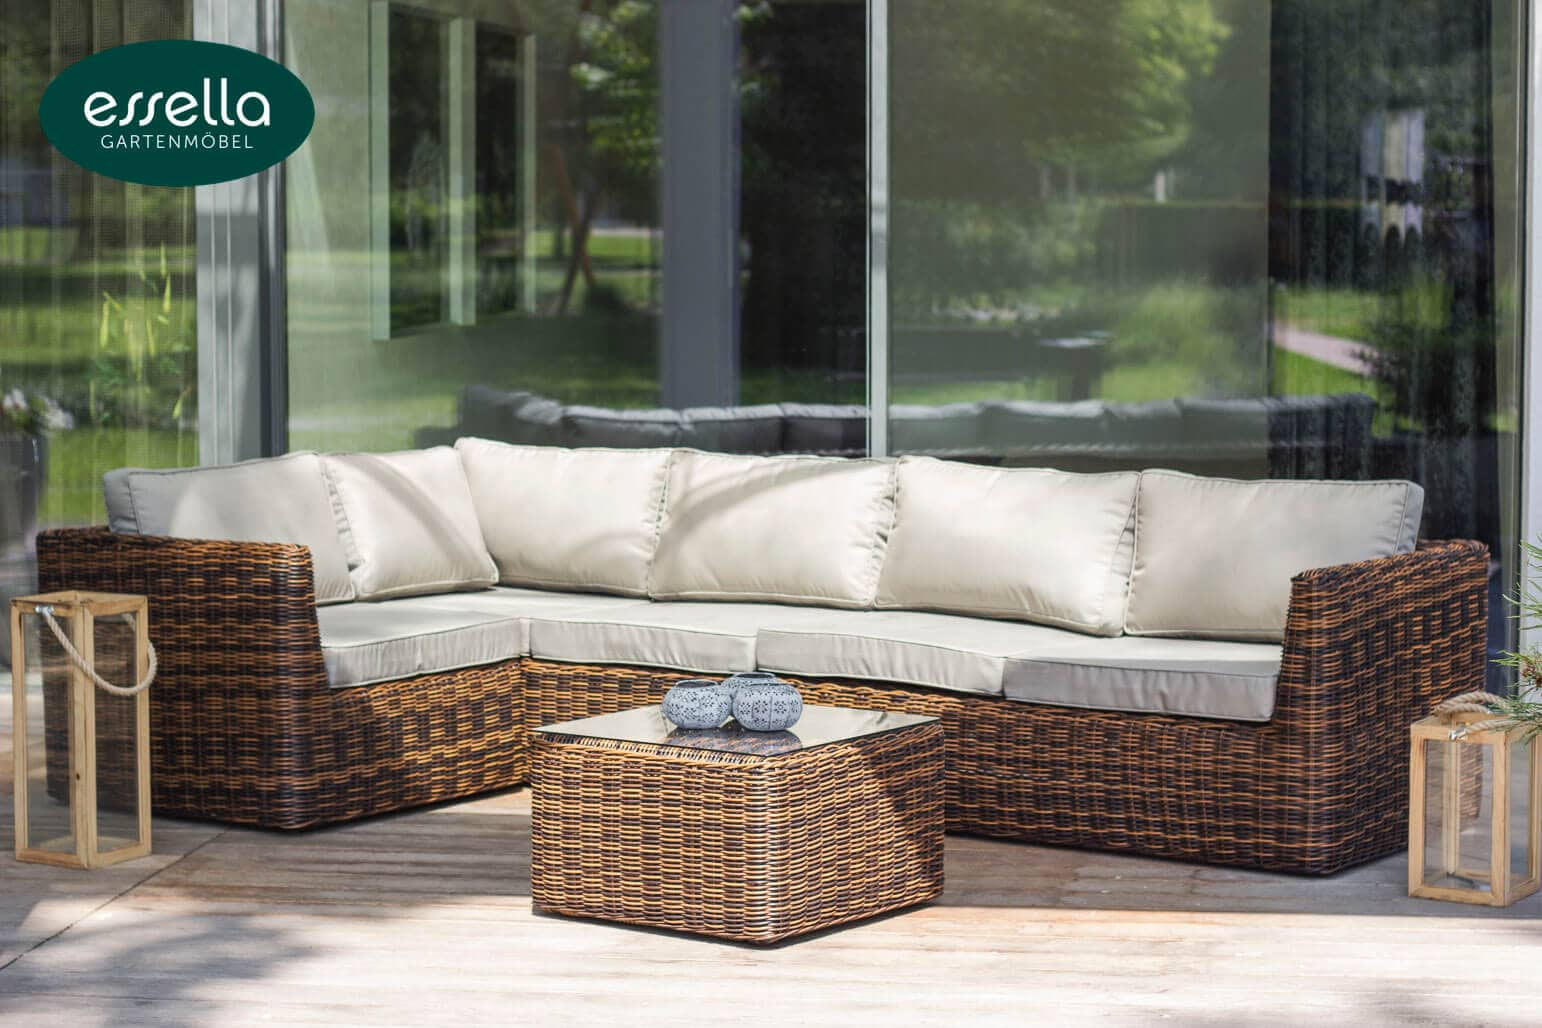 Loungemöbel Rattan Vorschau Essella Polyrattan Lounge Quotoslo Quot Bicolor